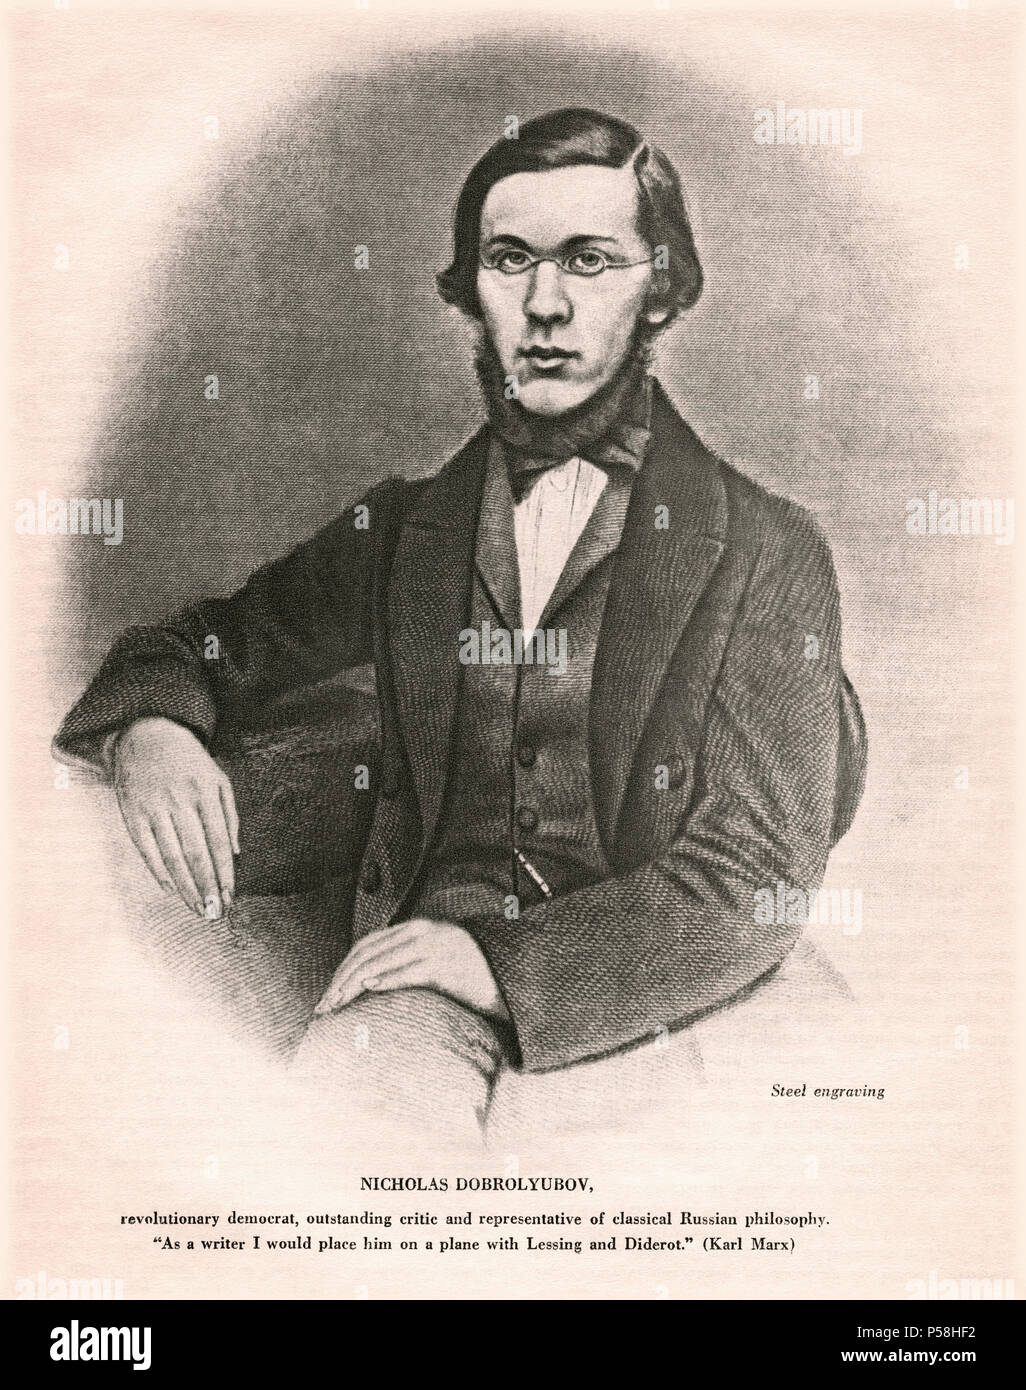 Nikolay Dobrolyubov (1836-61), Russian Literary Critic, Journalist and Poet, Seated Portrait, Steel Engraving - Stock Image